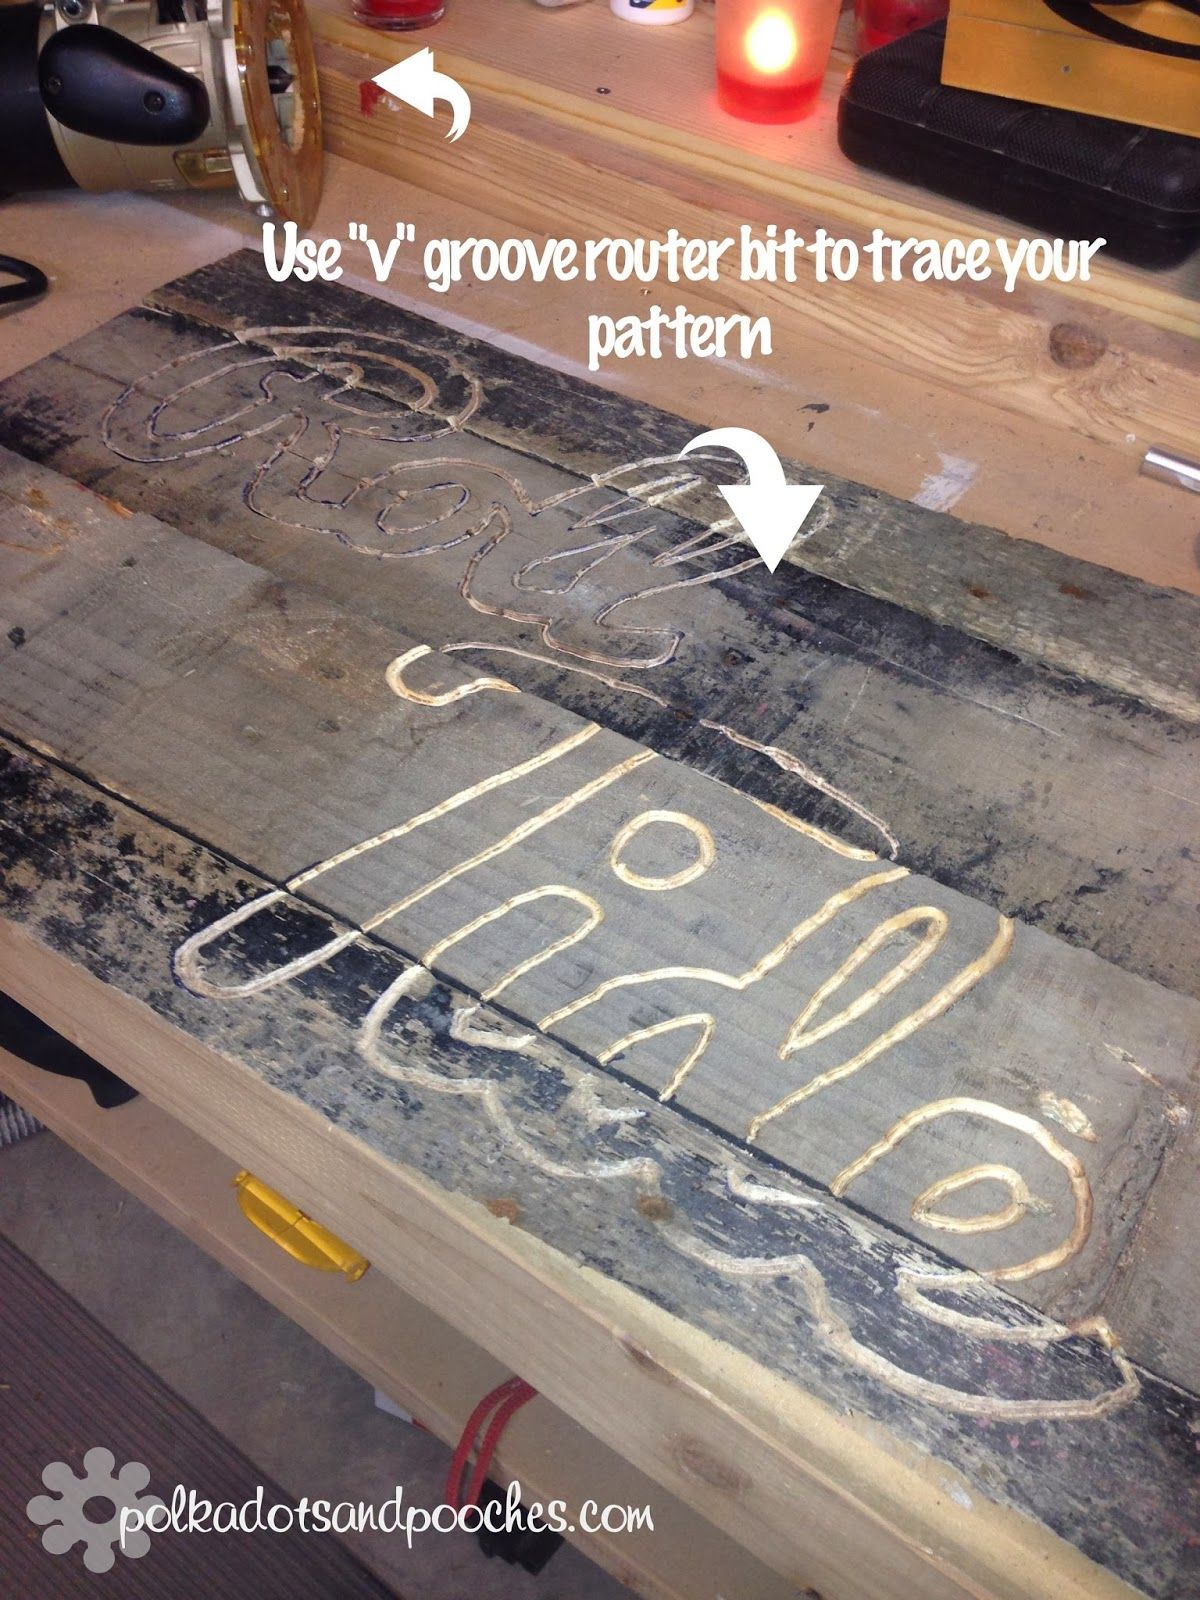 How To Make Wood Signs With A Router Diy Ideas Wood Signs Wood